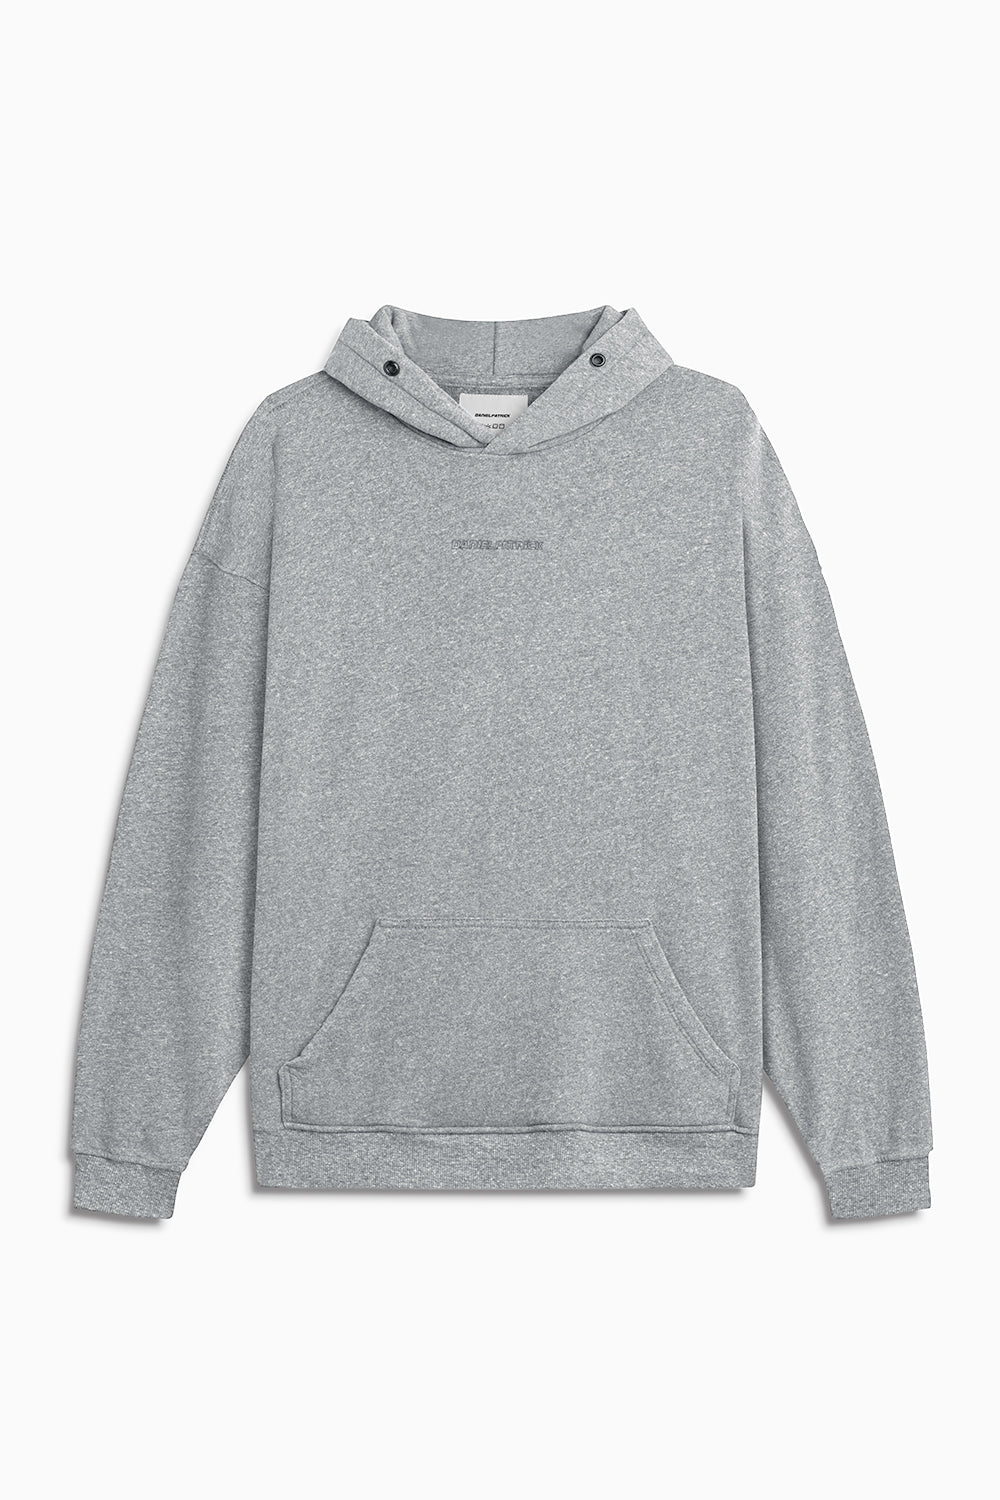 loop terry standard hoodie / heather grey